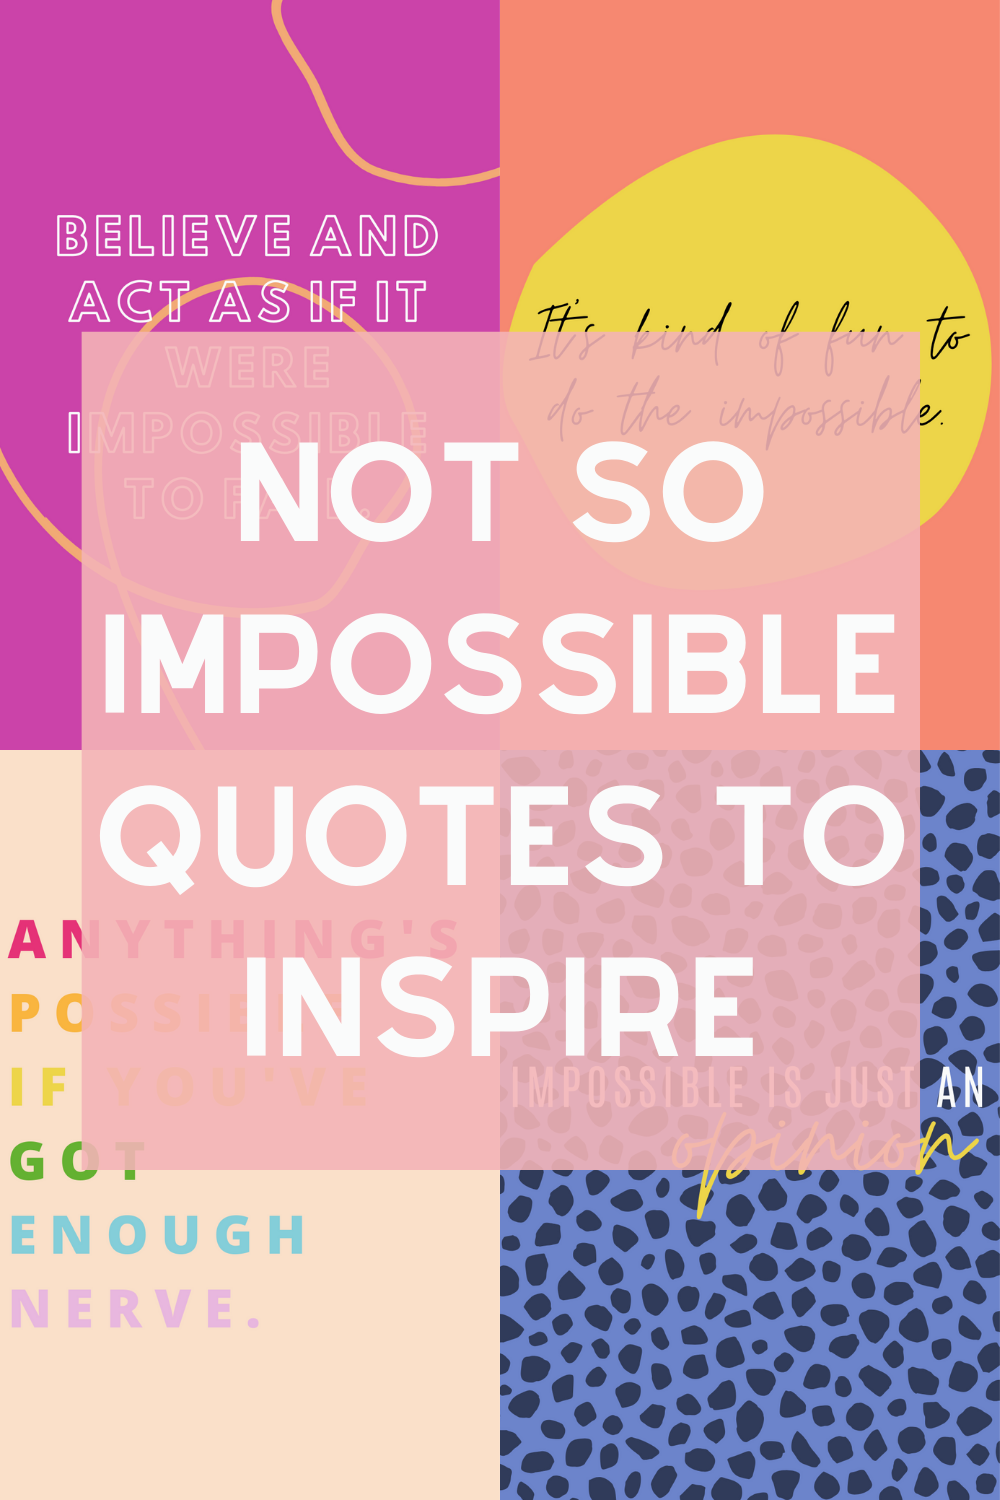 Inspring impossible quotes